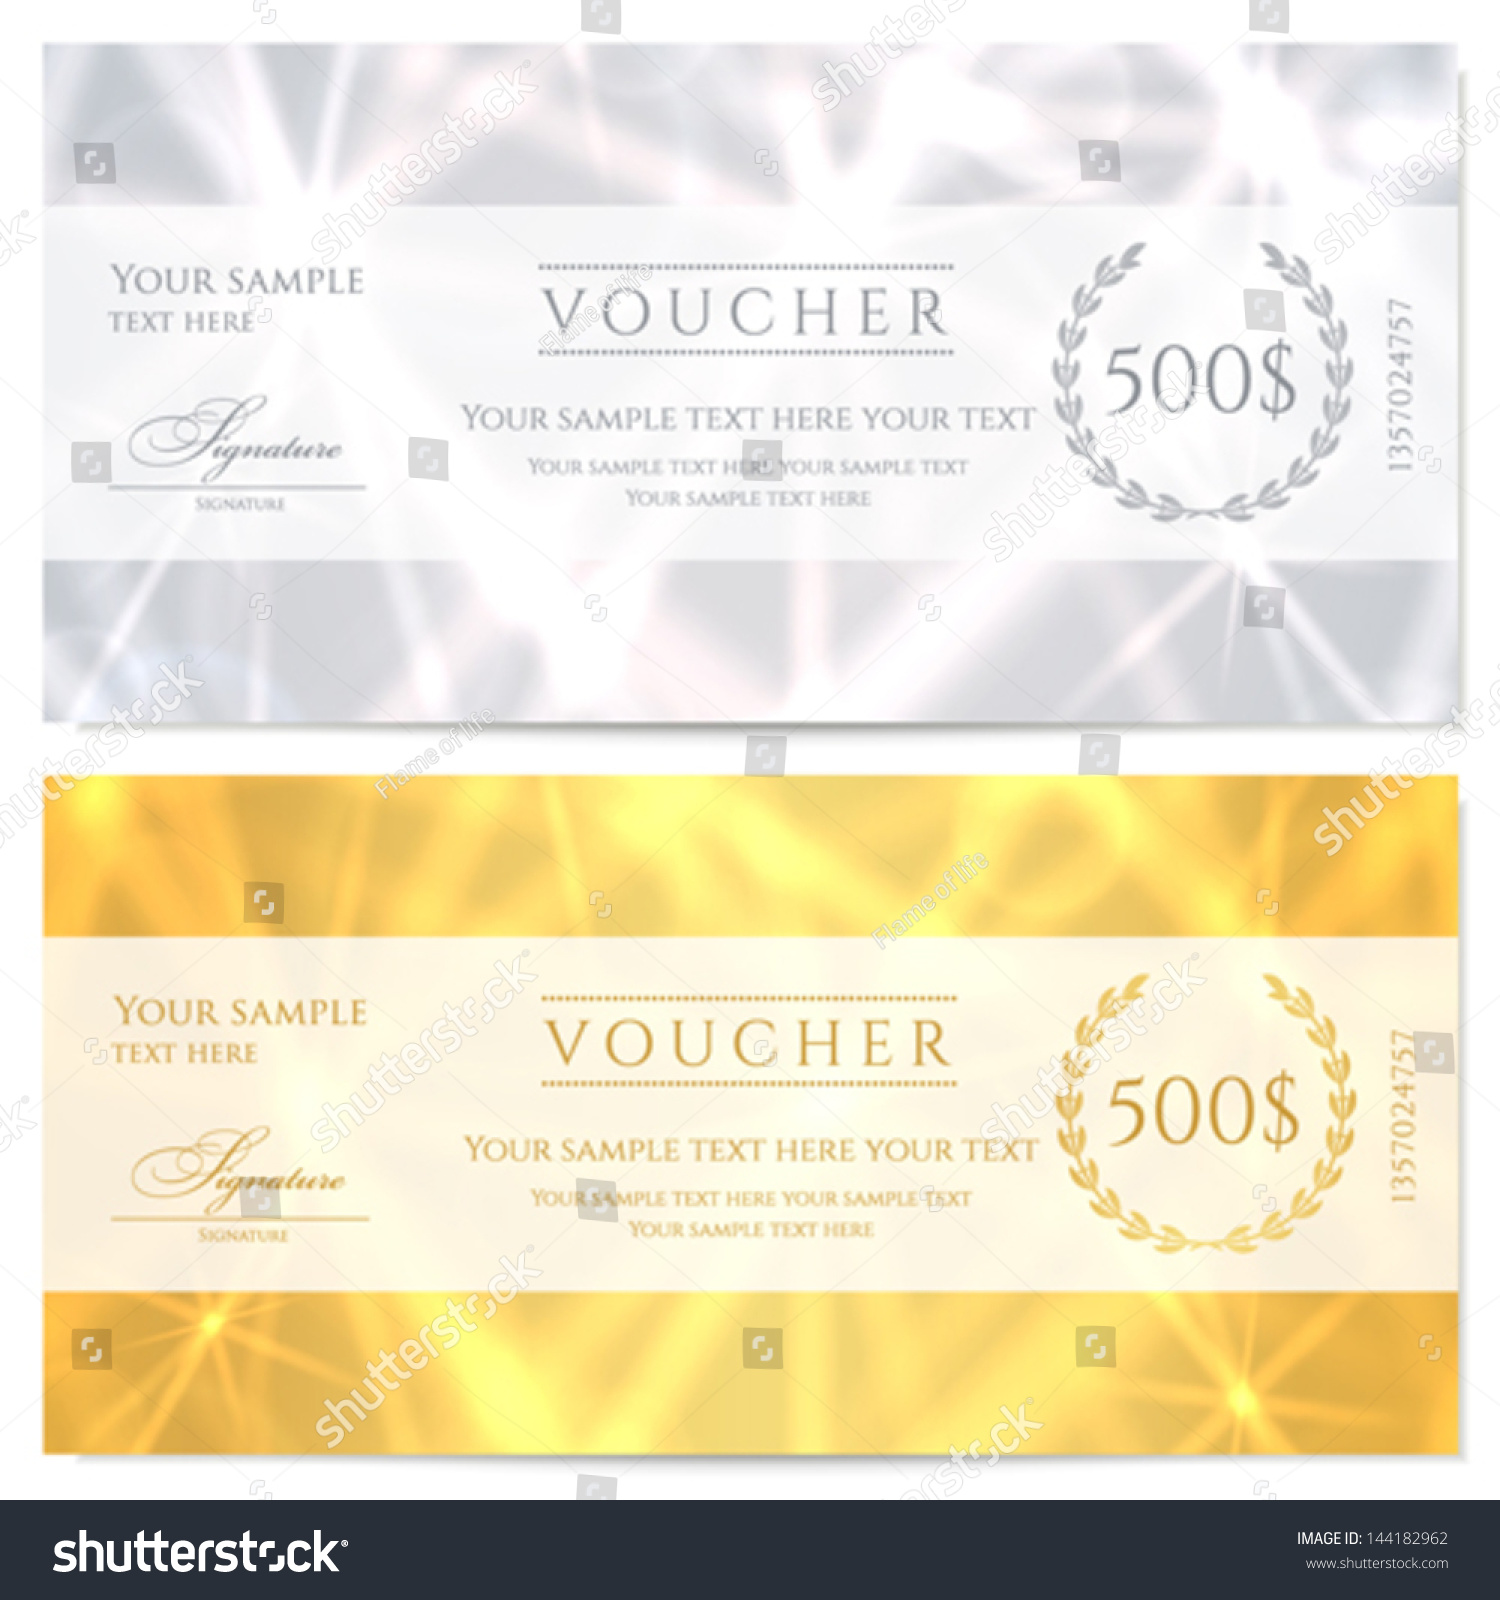 voucher gift certificate coupon template abstract pattern voucher gift certificate coupon template abstract pattern sparkling twinkling stars background design for invitation banknote cheque check